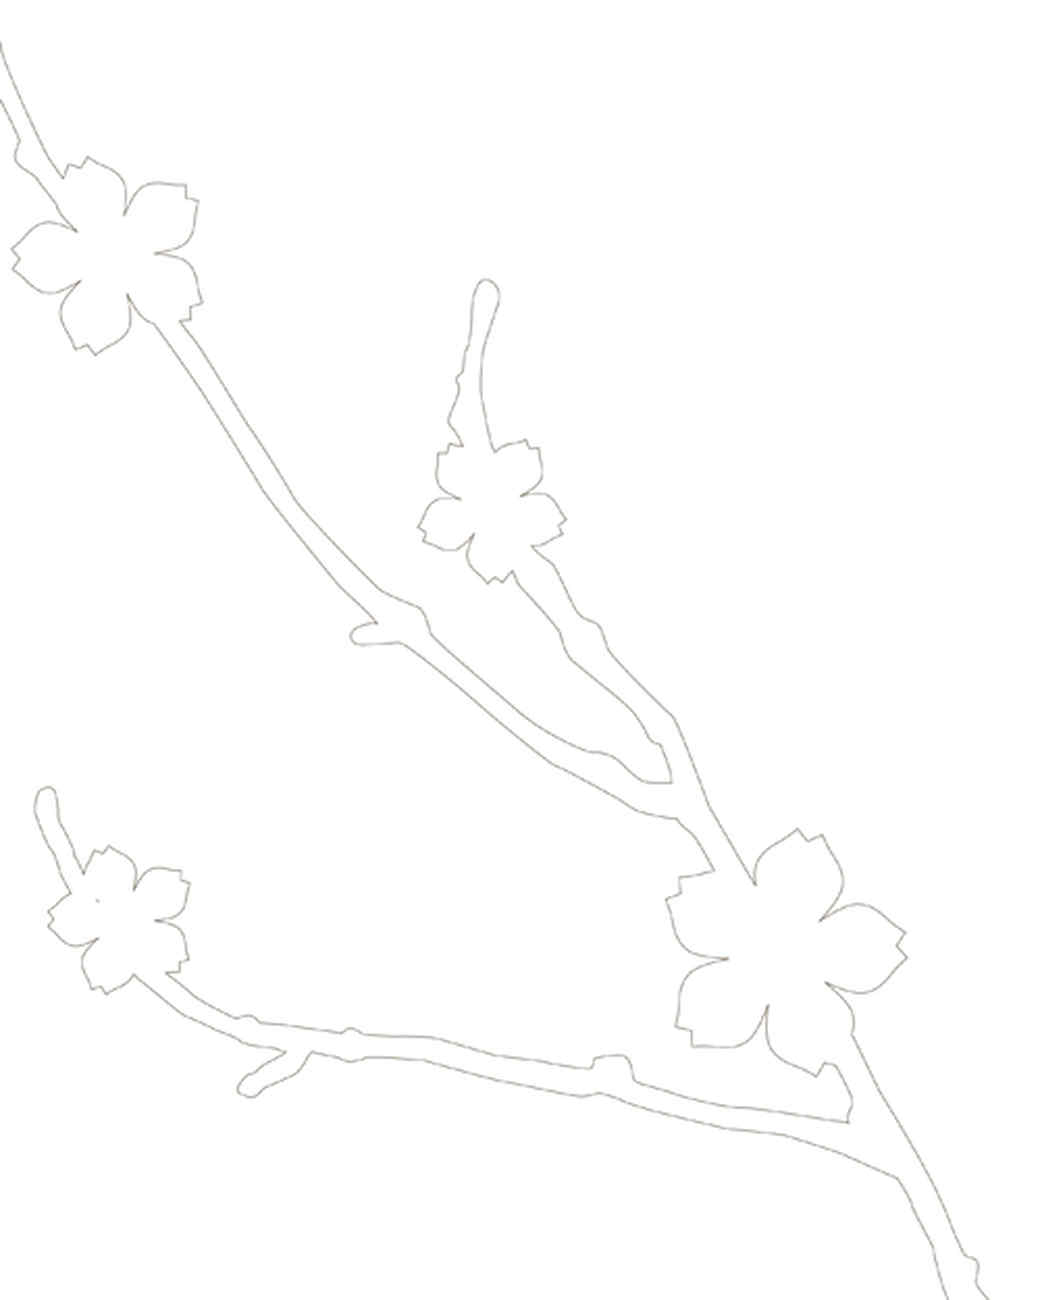 msl_0510_artwork_white_branch_tote_a_image.jpg